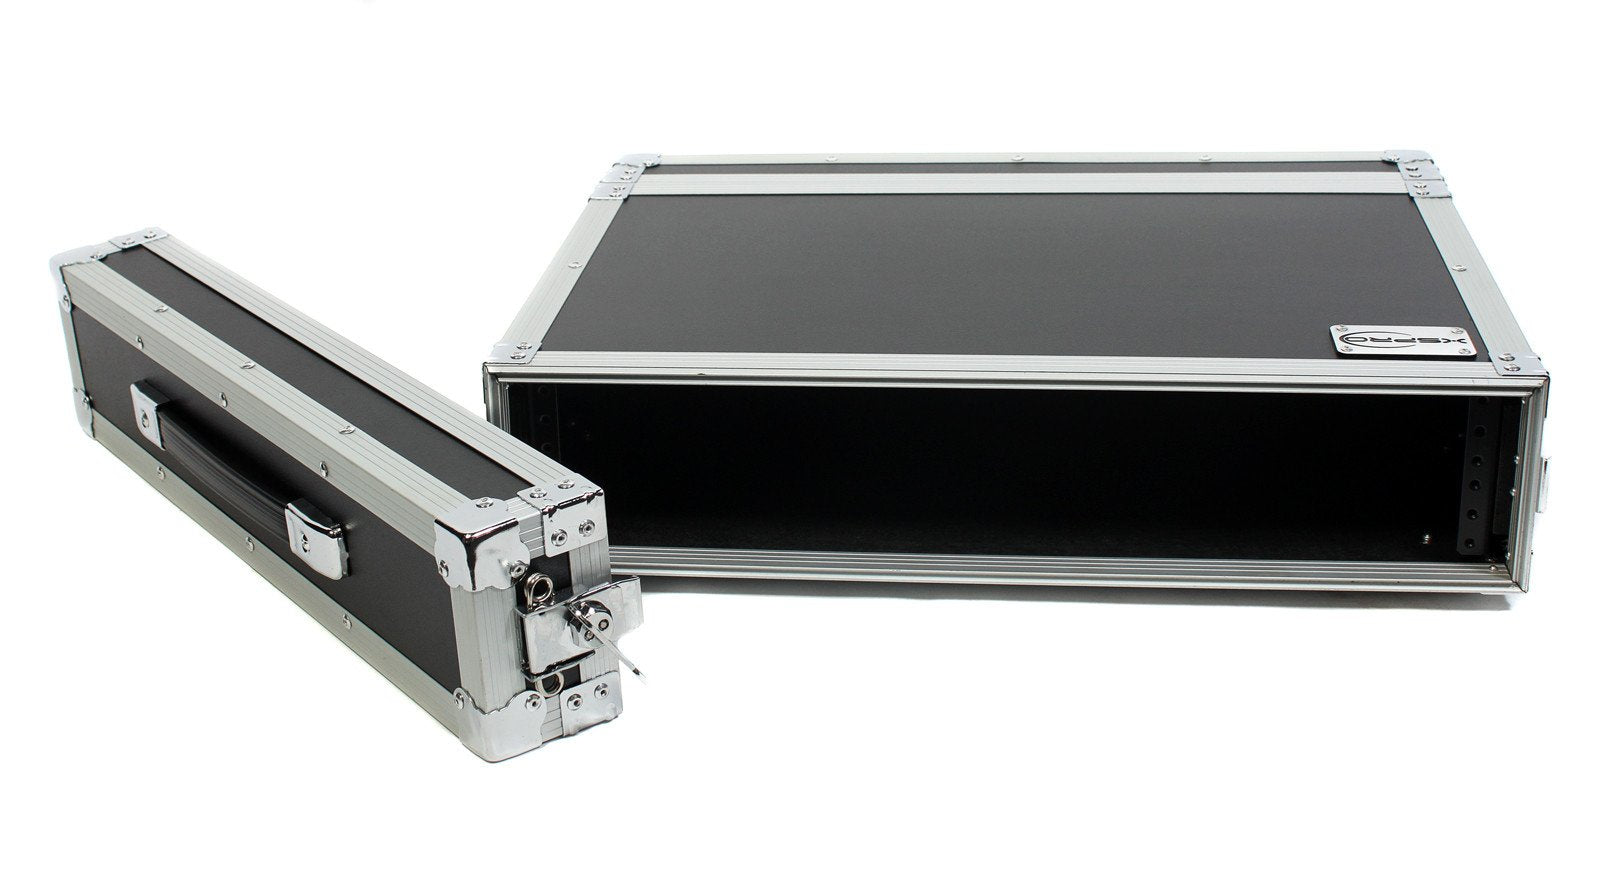 "XSPRO XS2U-12 2 Space 2U ATA Effects Rack Flight Case Front Back Rails -19"" Wide"